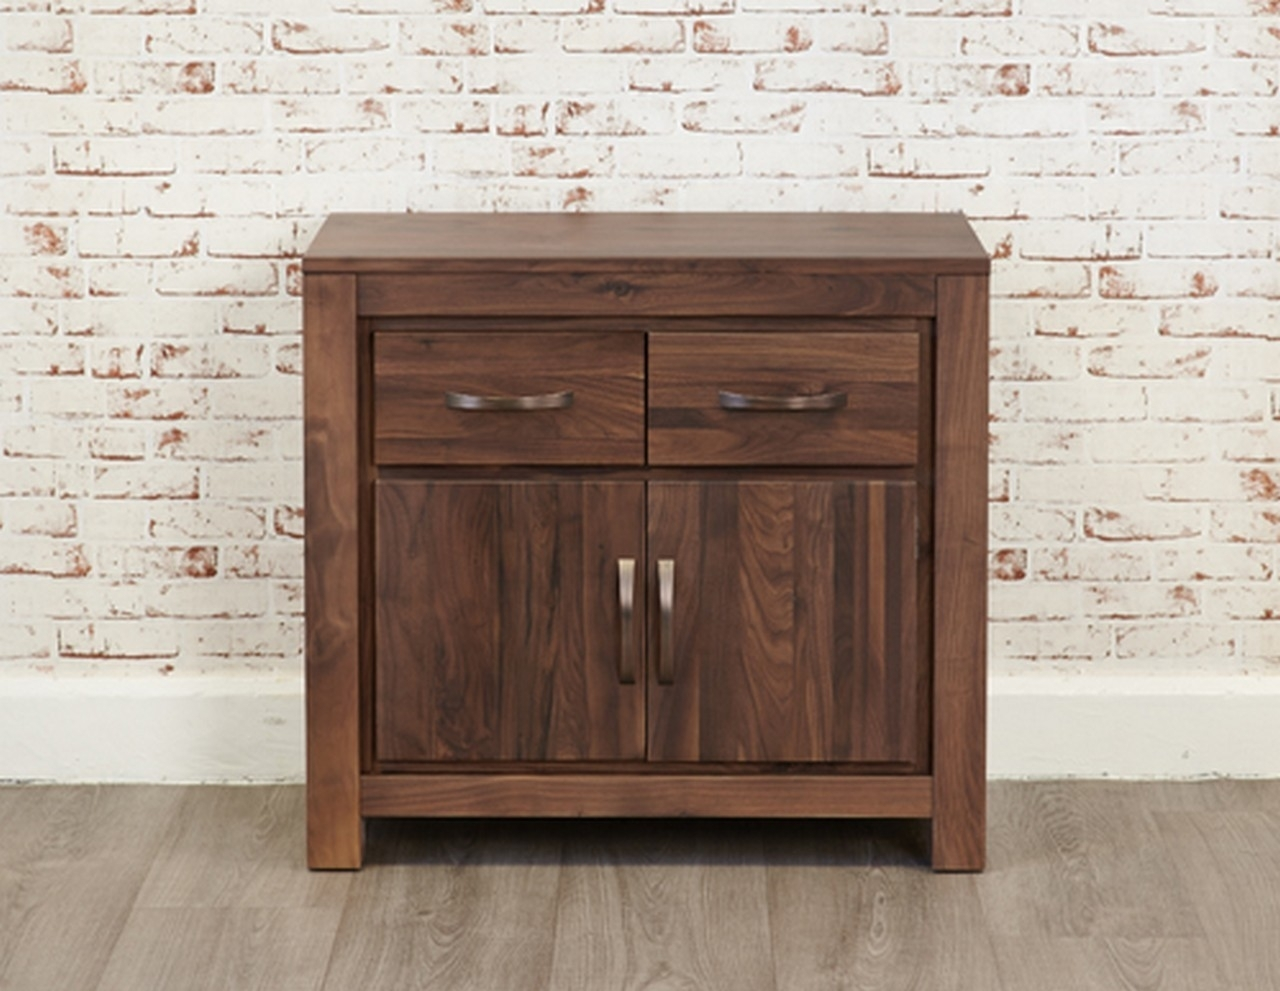 Baumhaus Mayan Walnut Small Sideboard From The Bed Station with regard to Walnut Small Sideboards (Image 3 of 30)